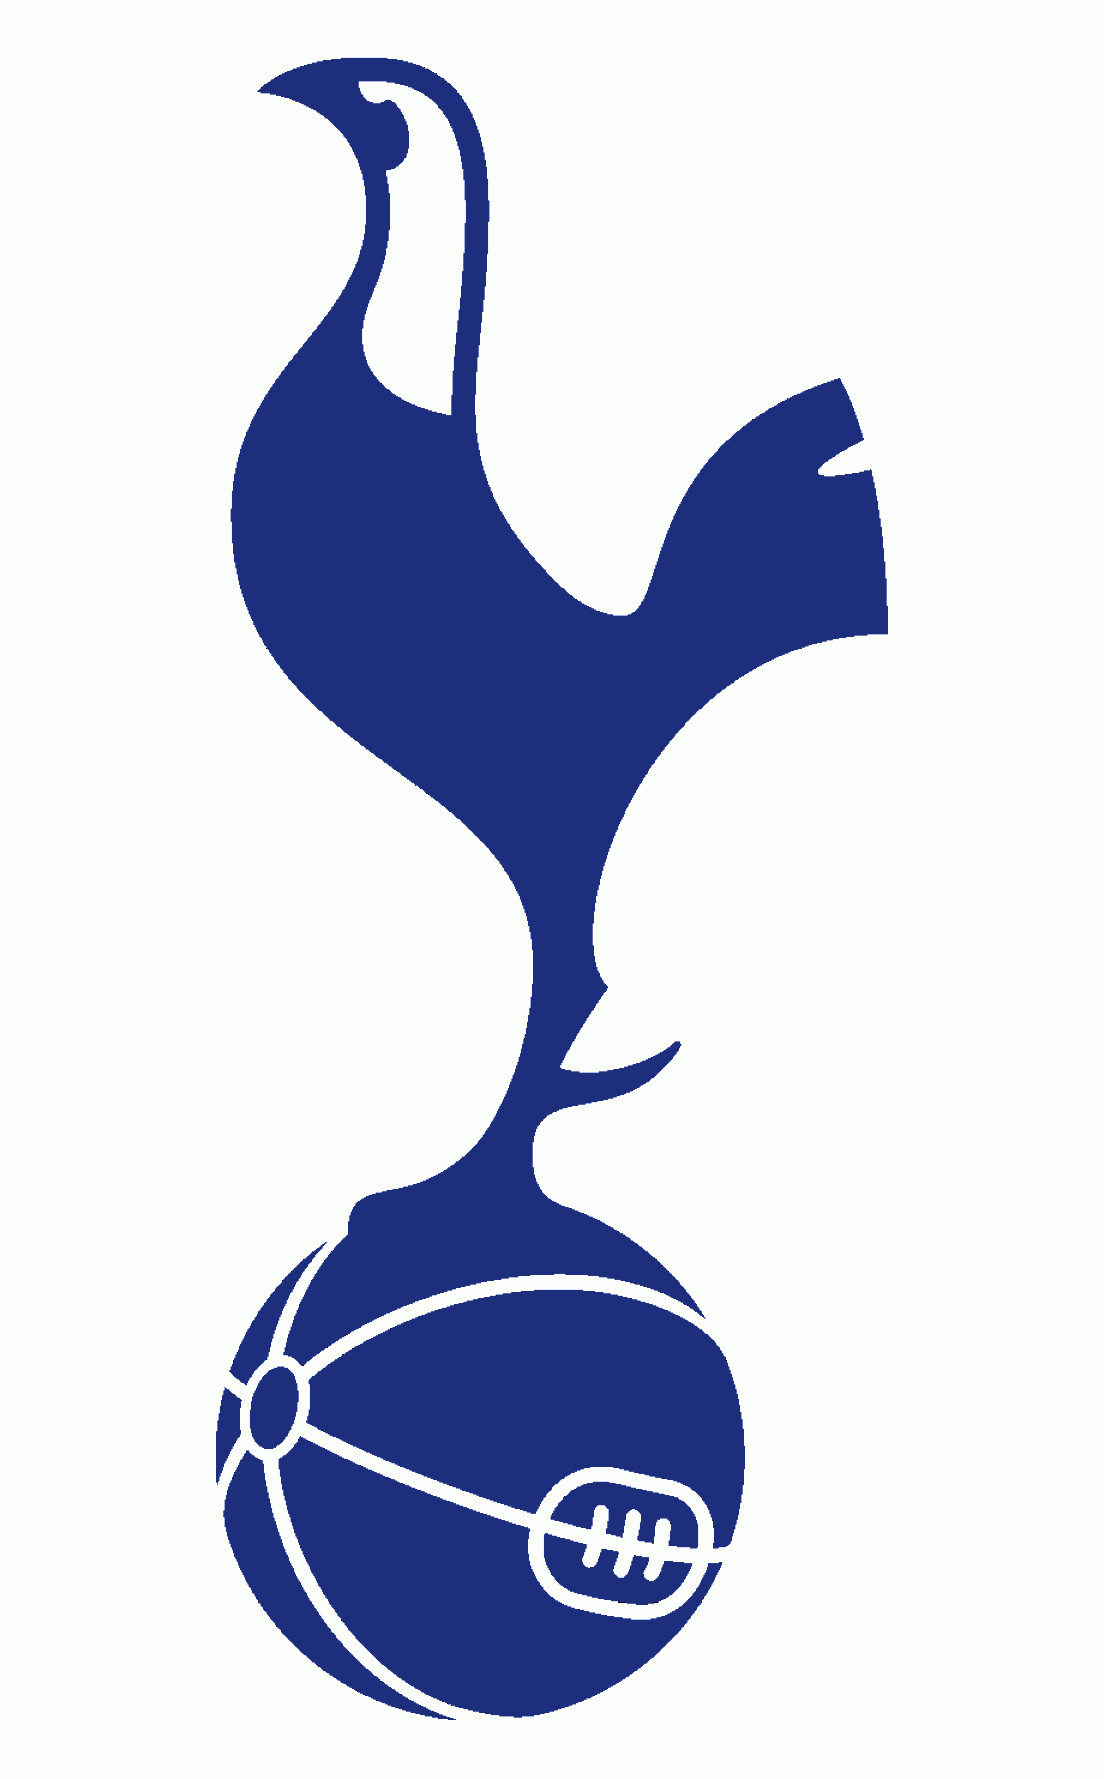 Football Laces Vector Silhouette: Hxhbortottenham Hotspur Football Club Logo Vector Eps Free